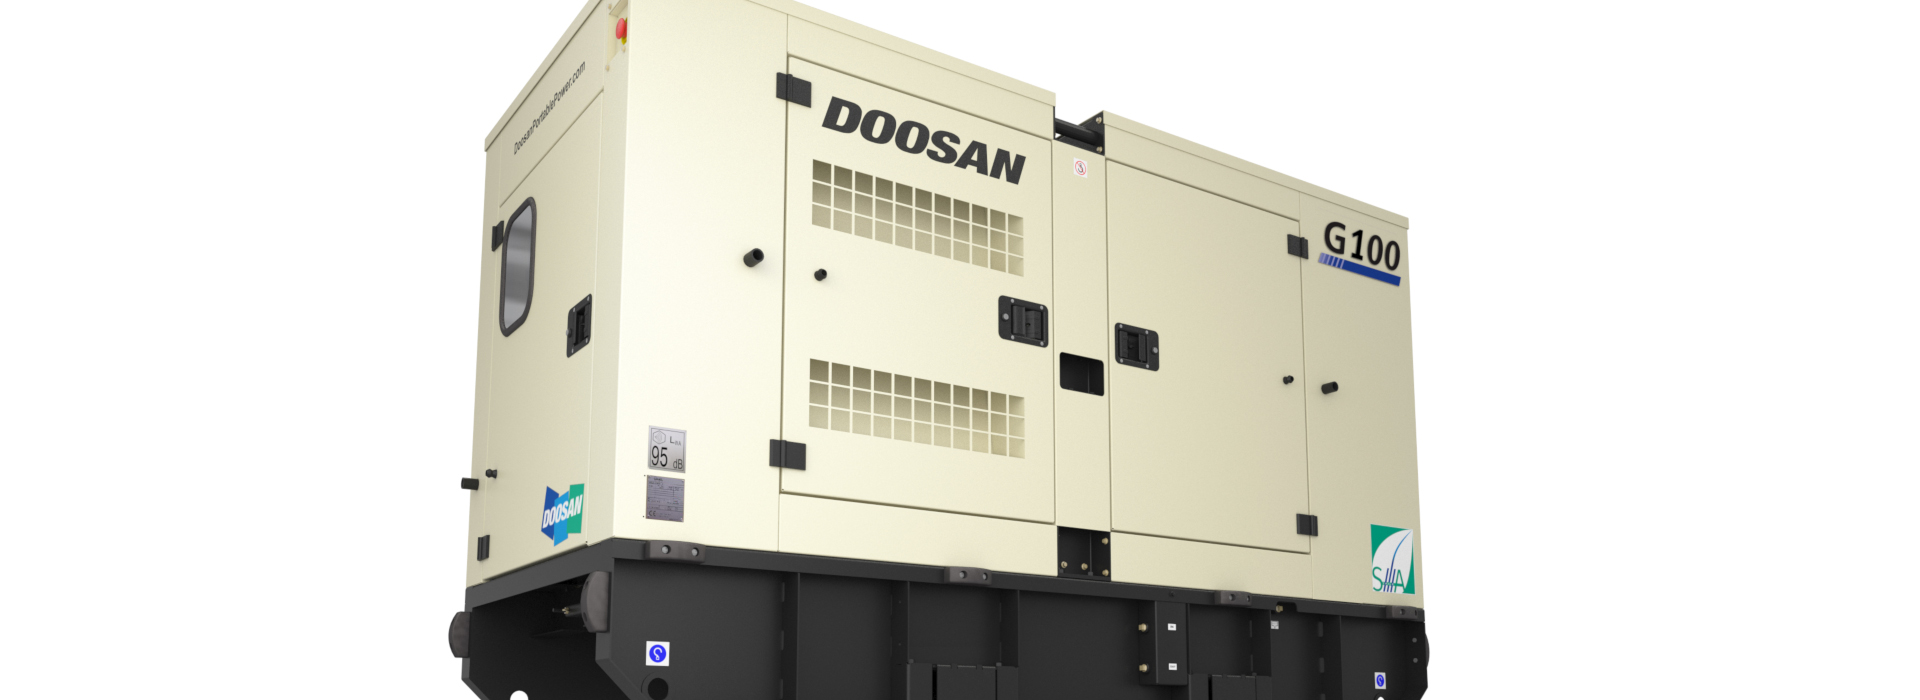 Doosan Portable Power: G100